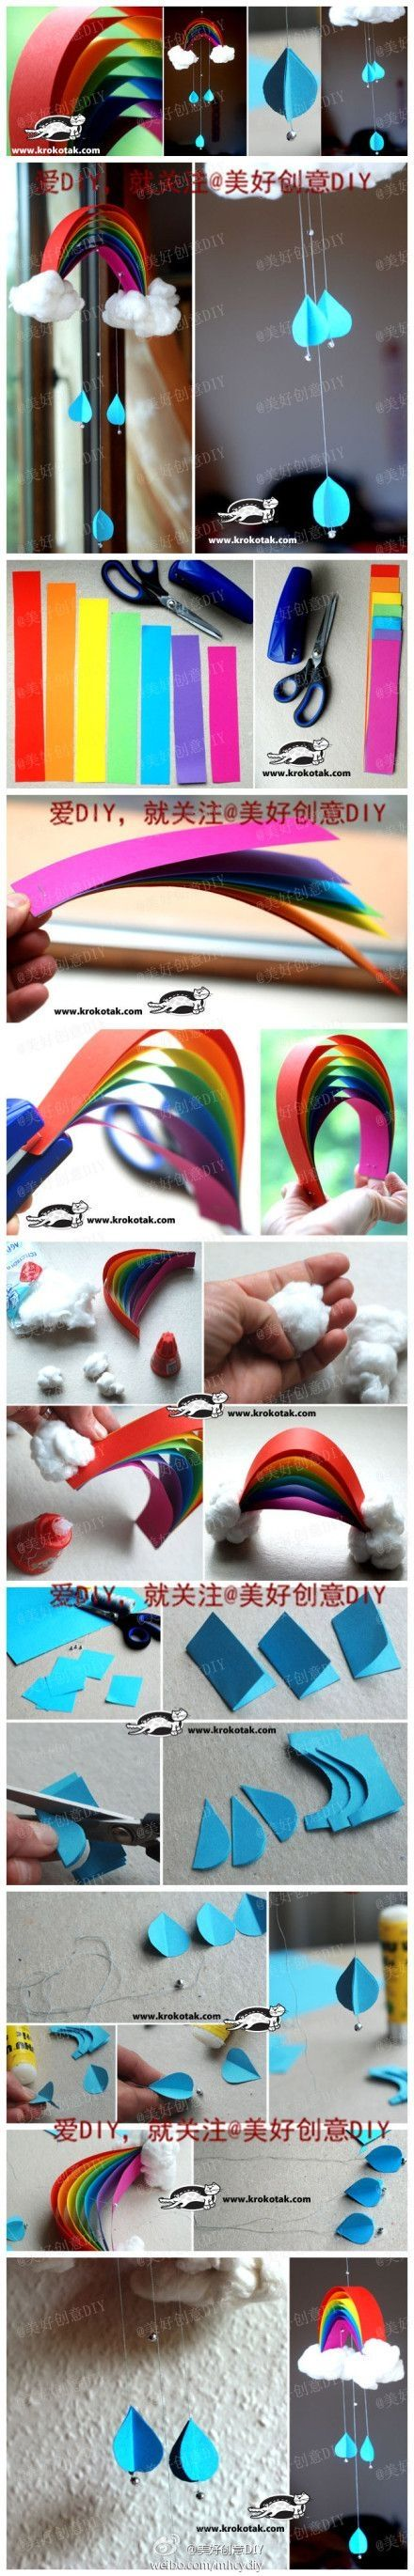 How to make Beautiful Rainbow Mobile step by step DIY tutorial instructions by Mary Smith fSesz